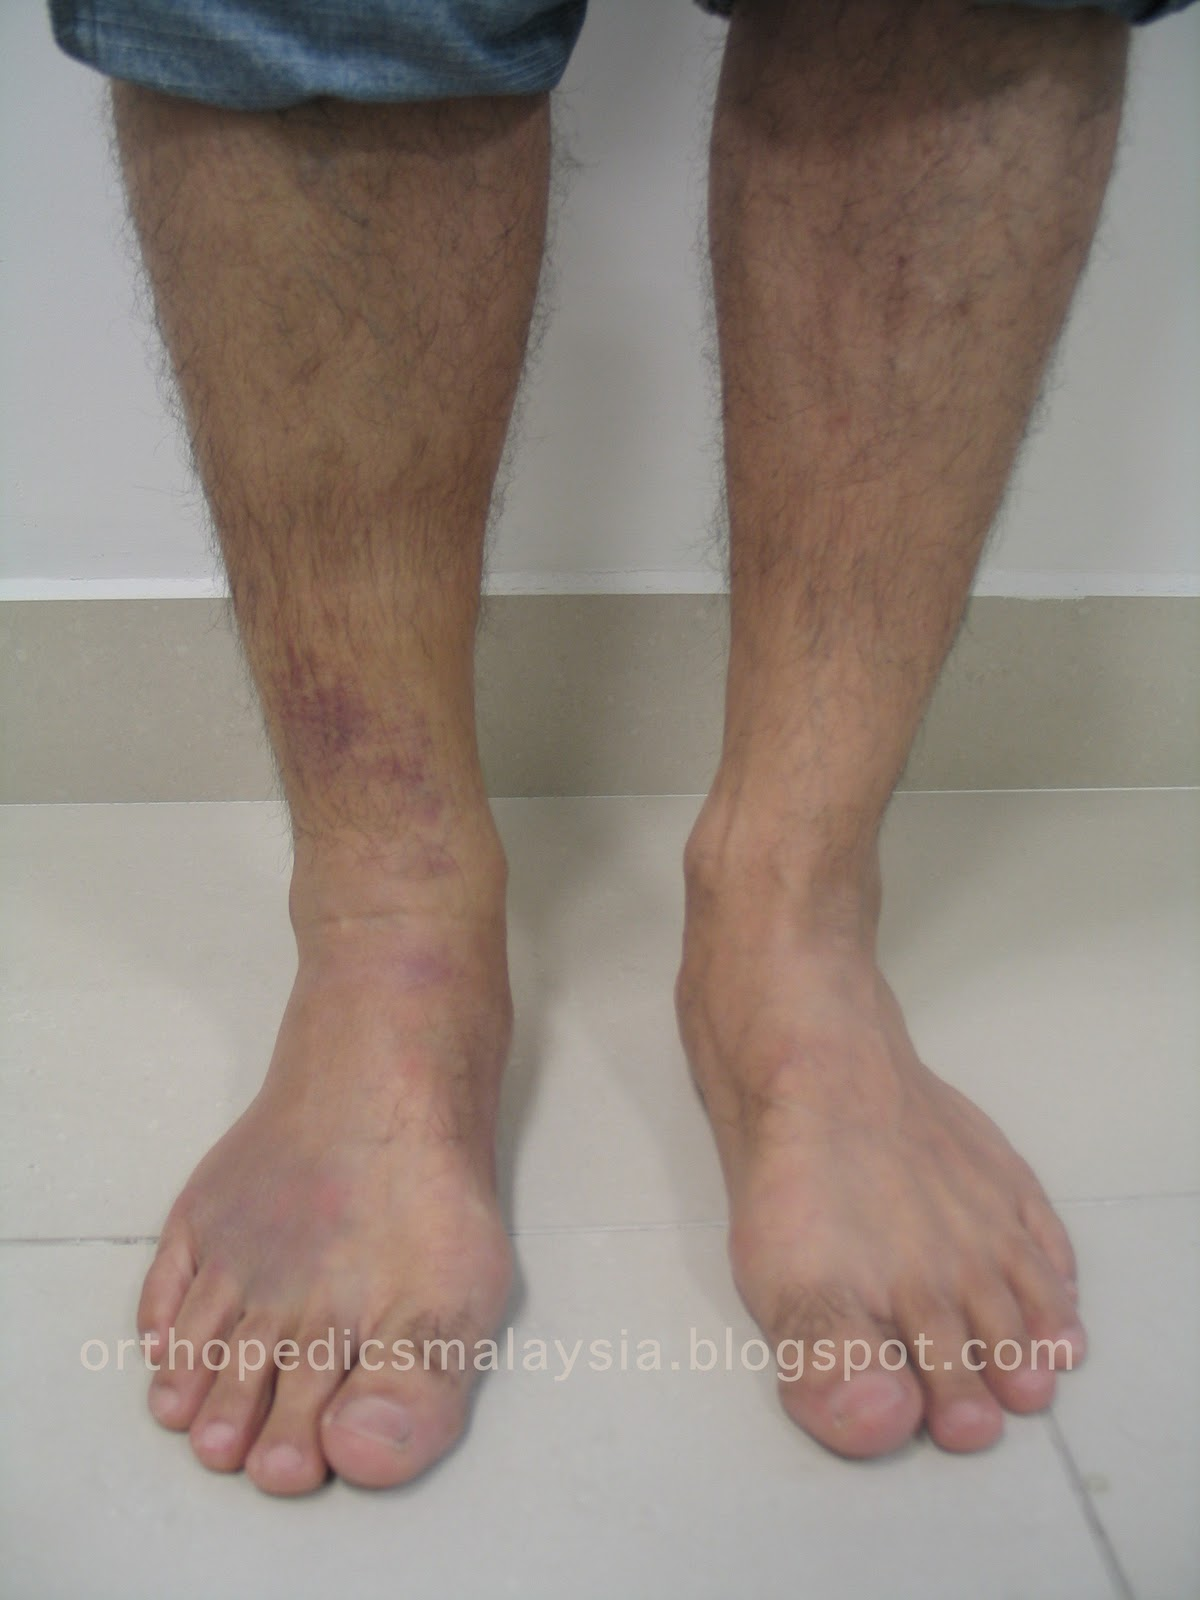 Gastrocnemius Muscle Tear Calf Tear The Orthopedics Malaysia Blog